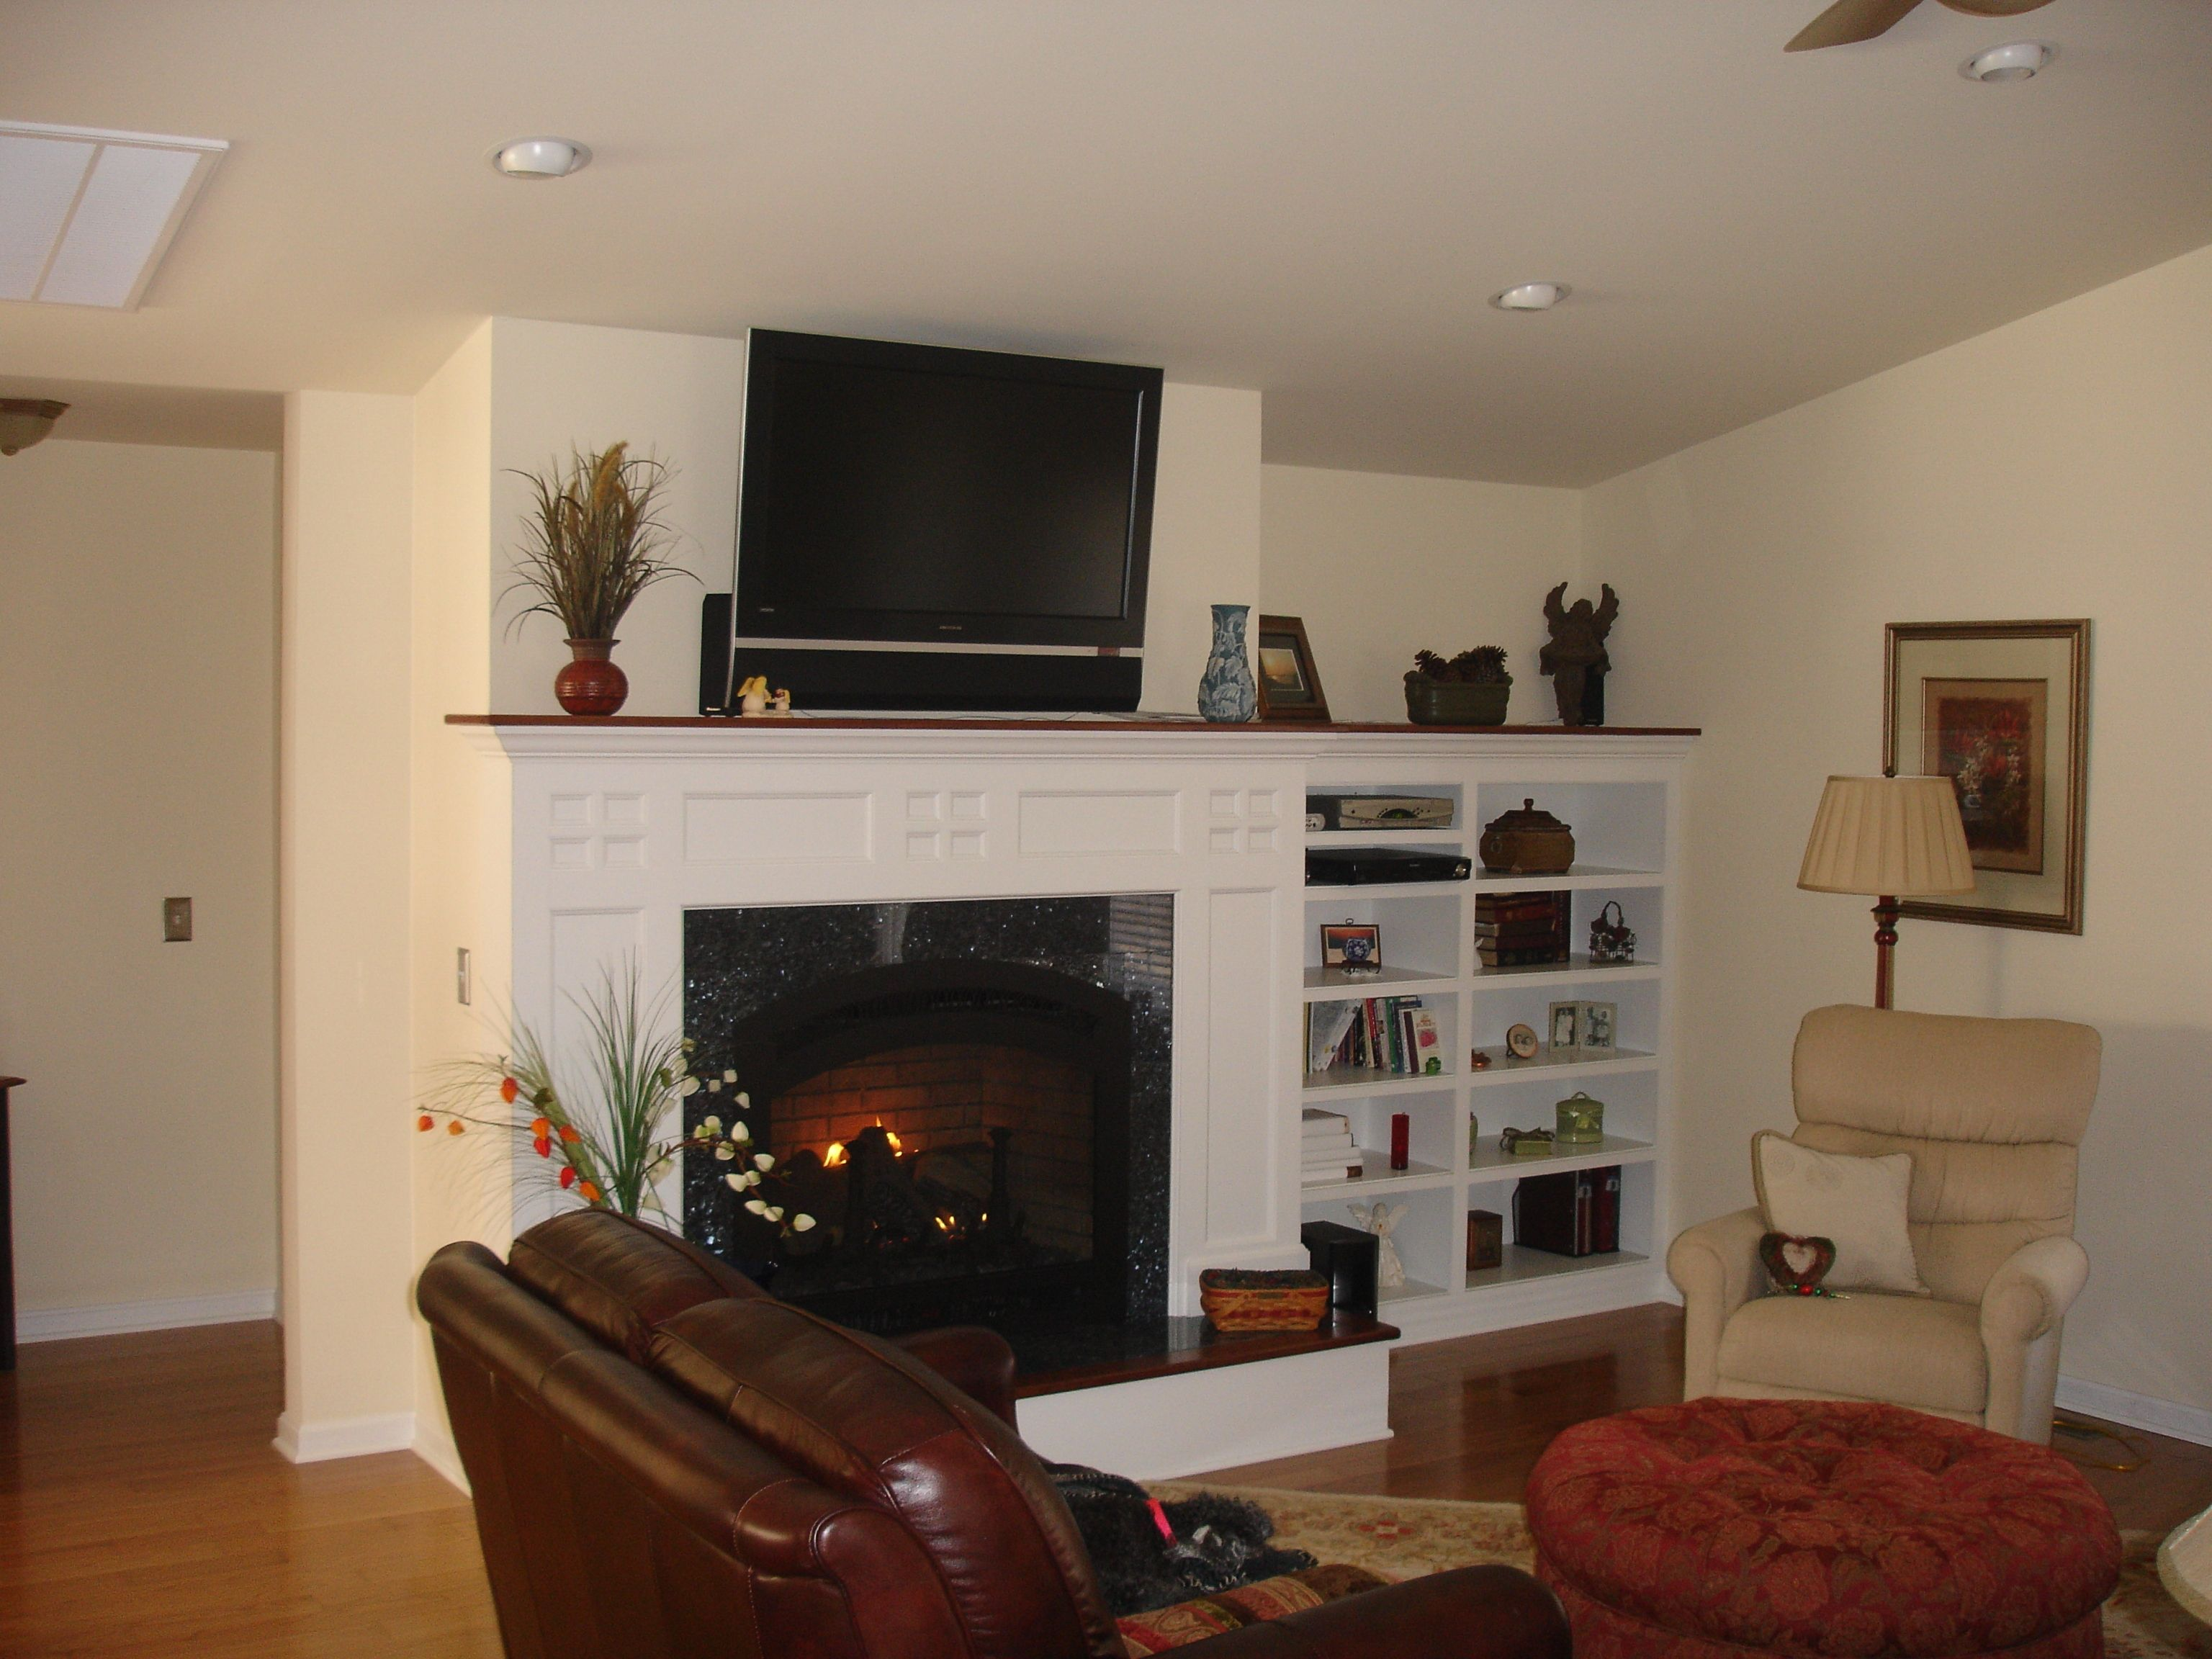 Built-in shelving next to fireplace | Home Project Inspirations ...